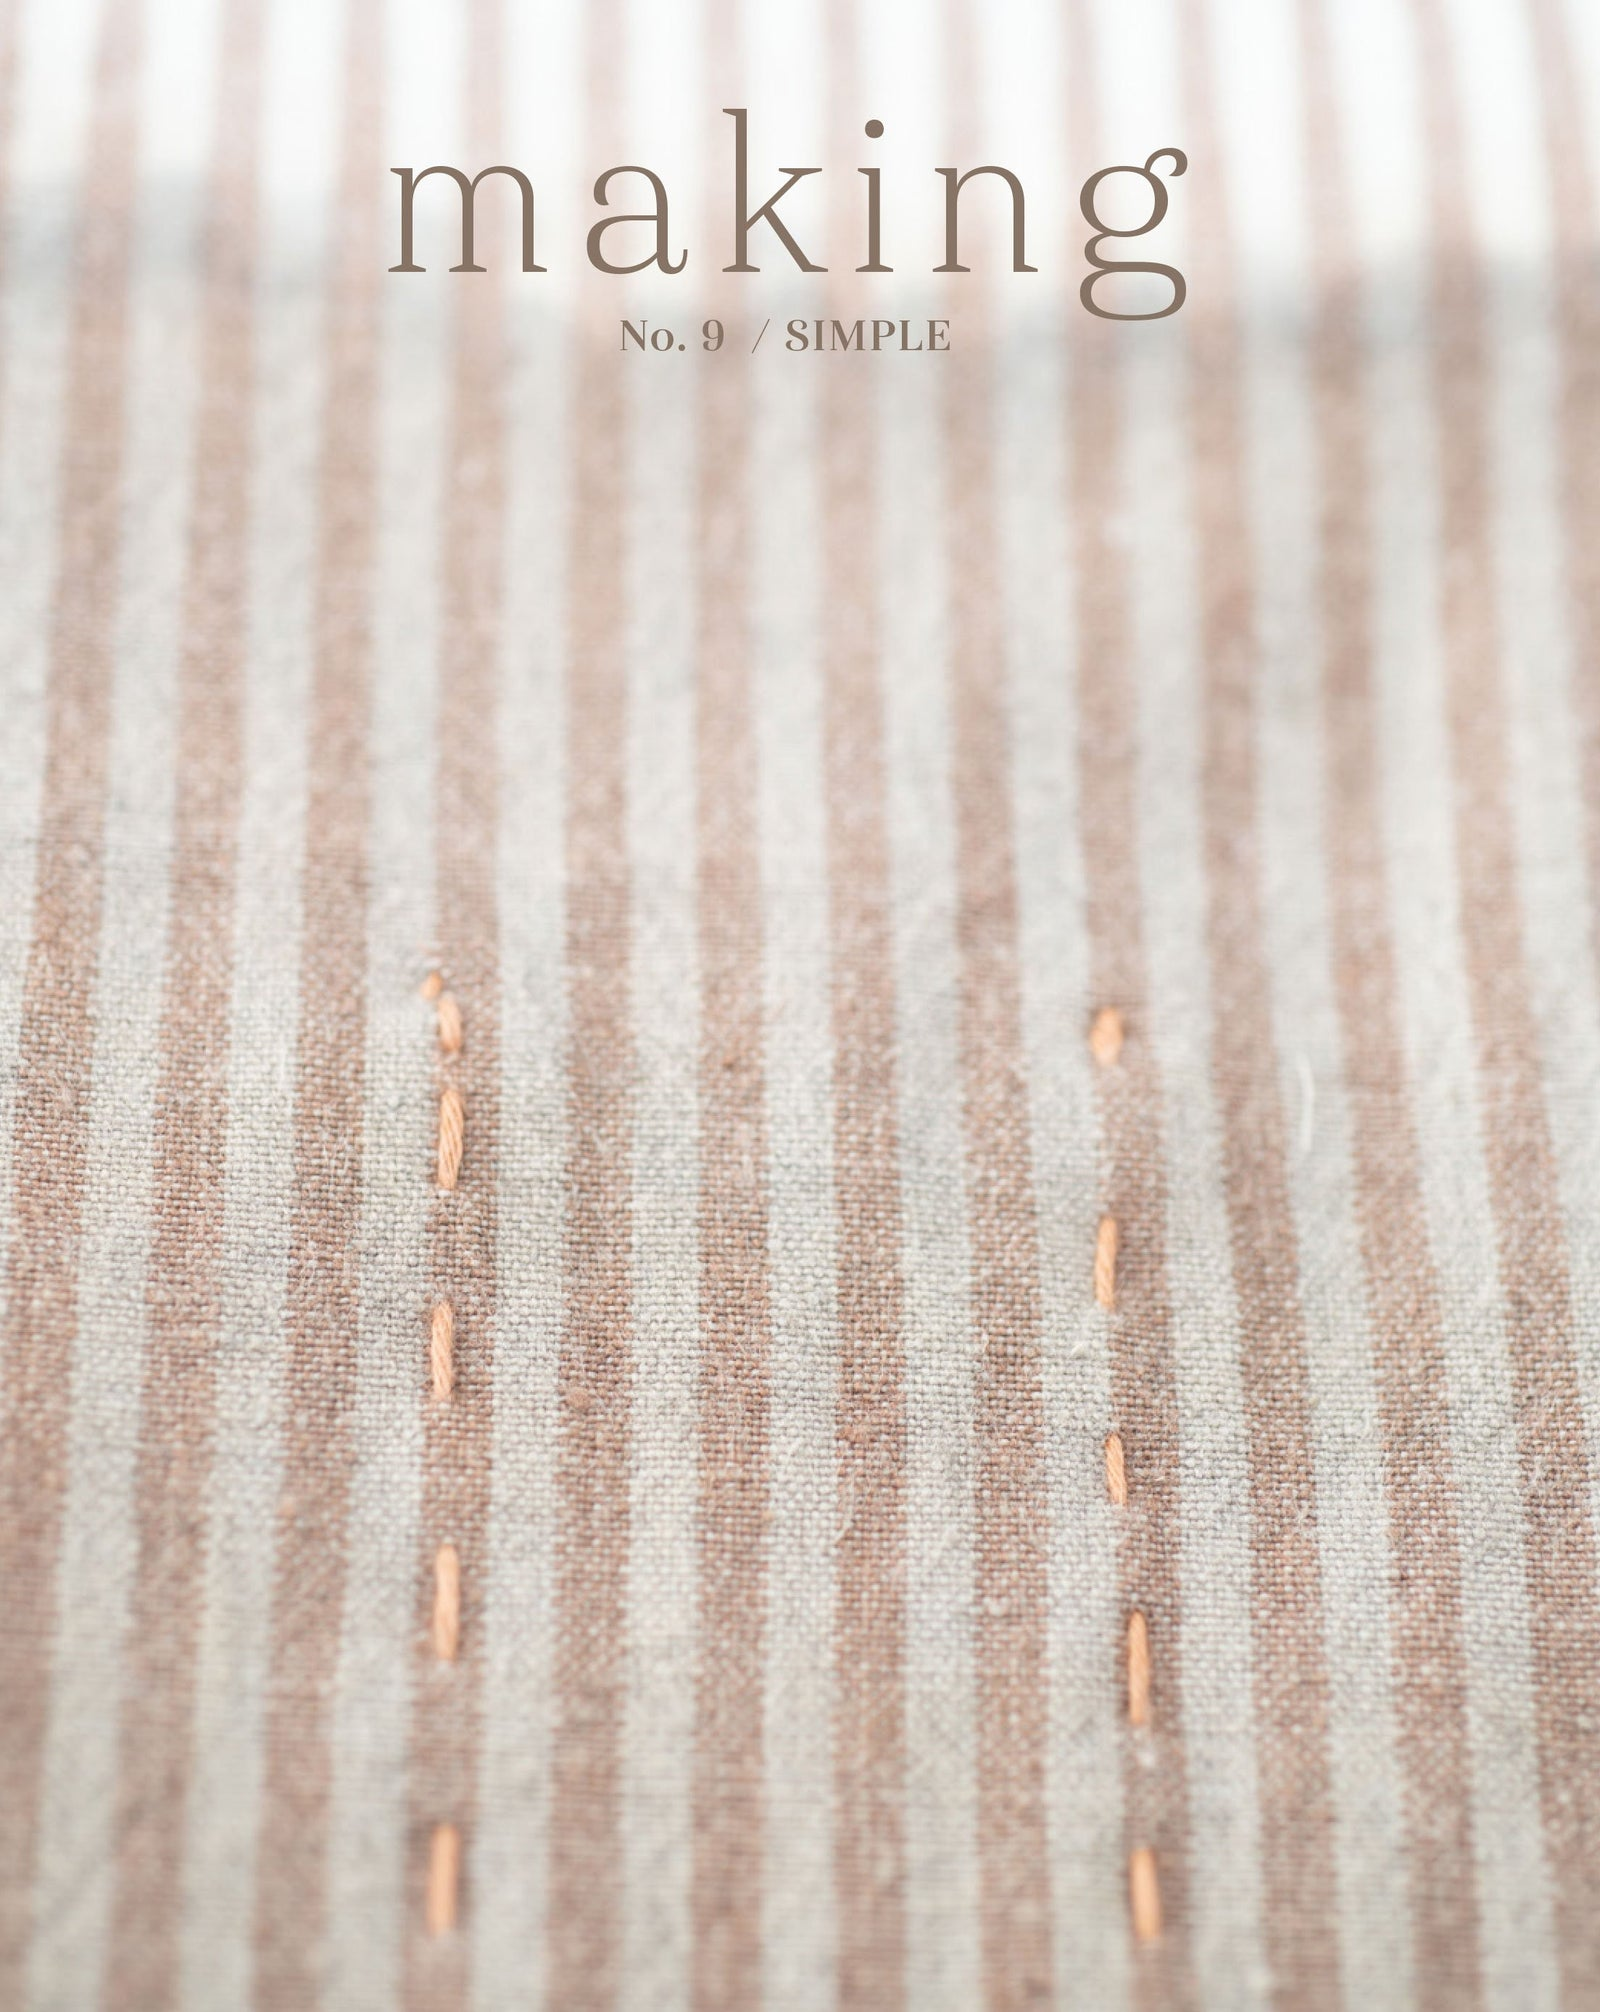 Making Magazine No. 9 Simple